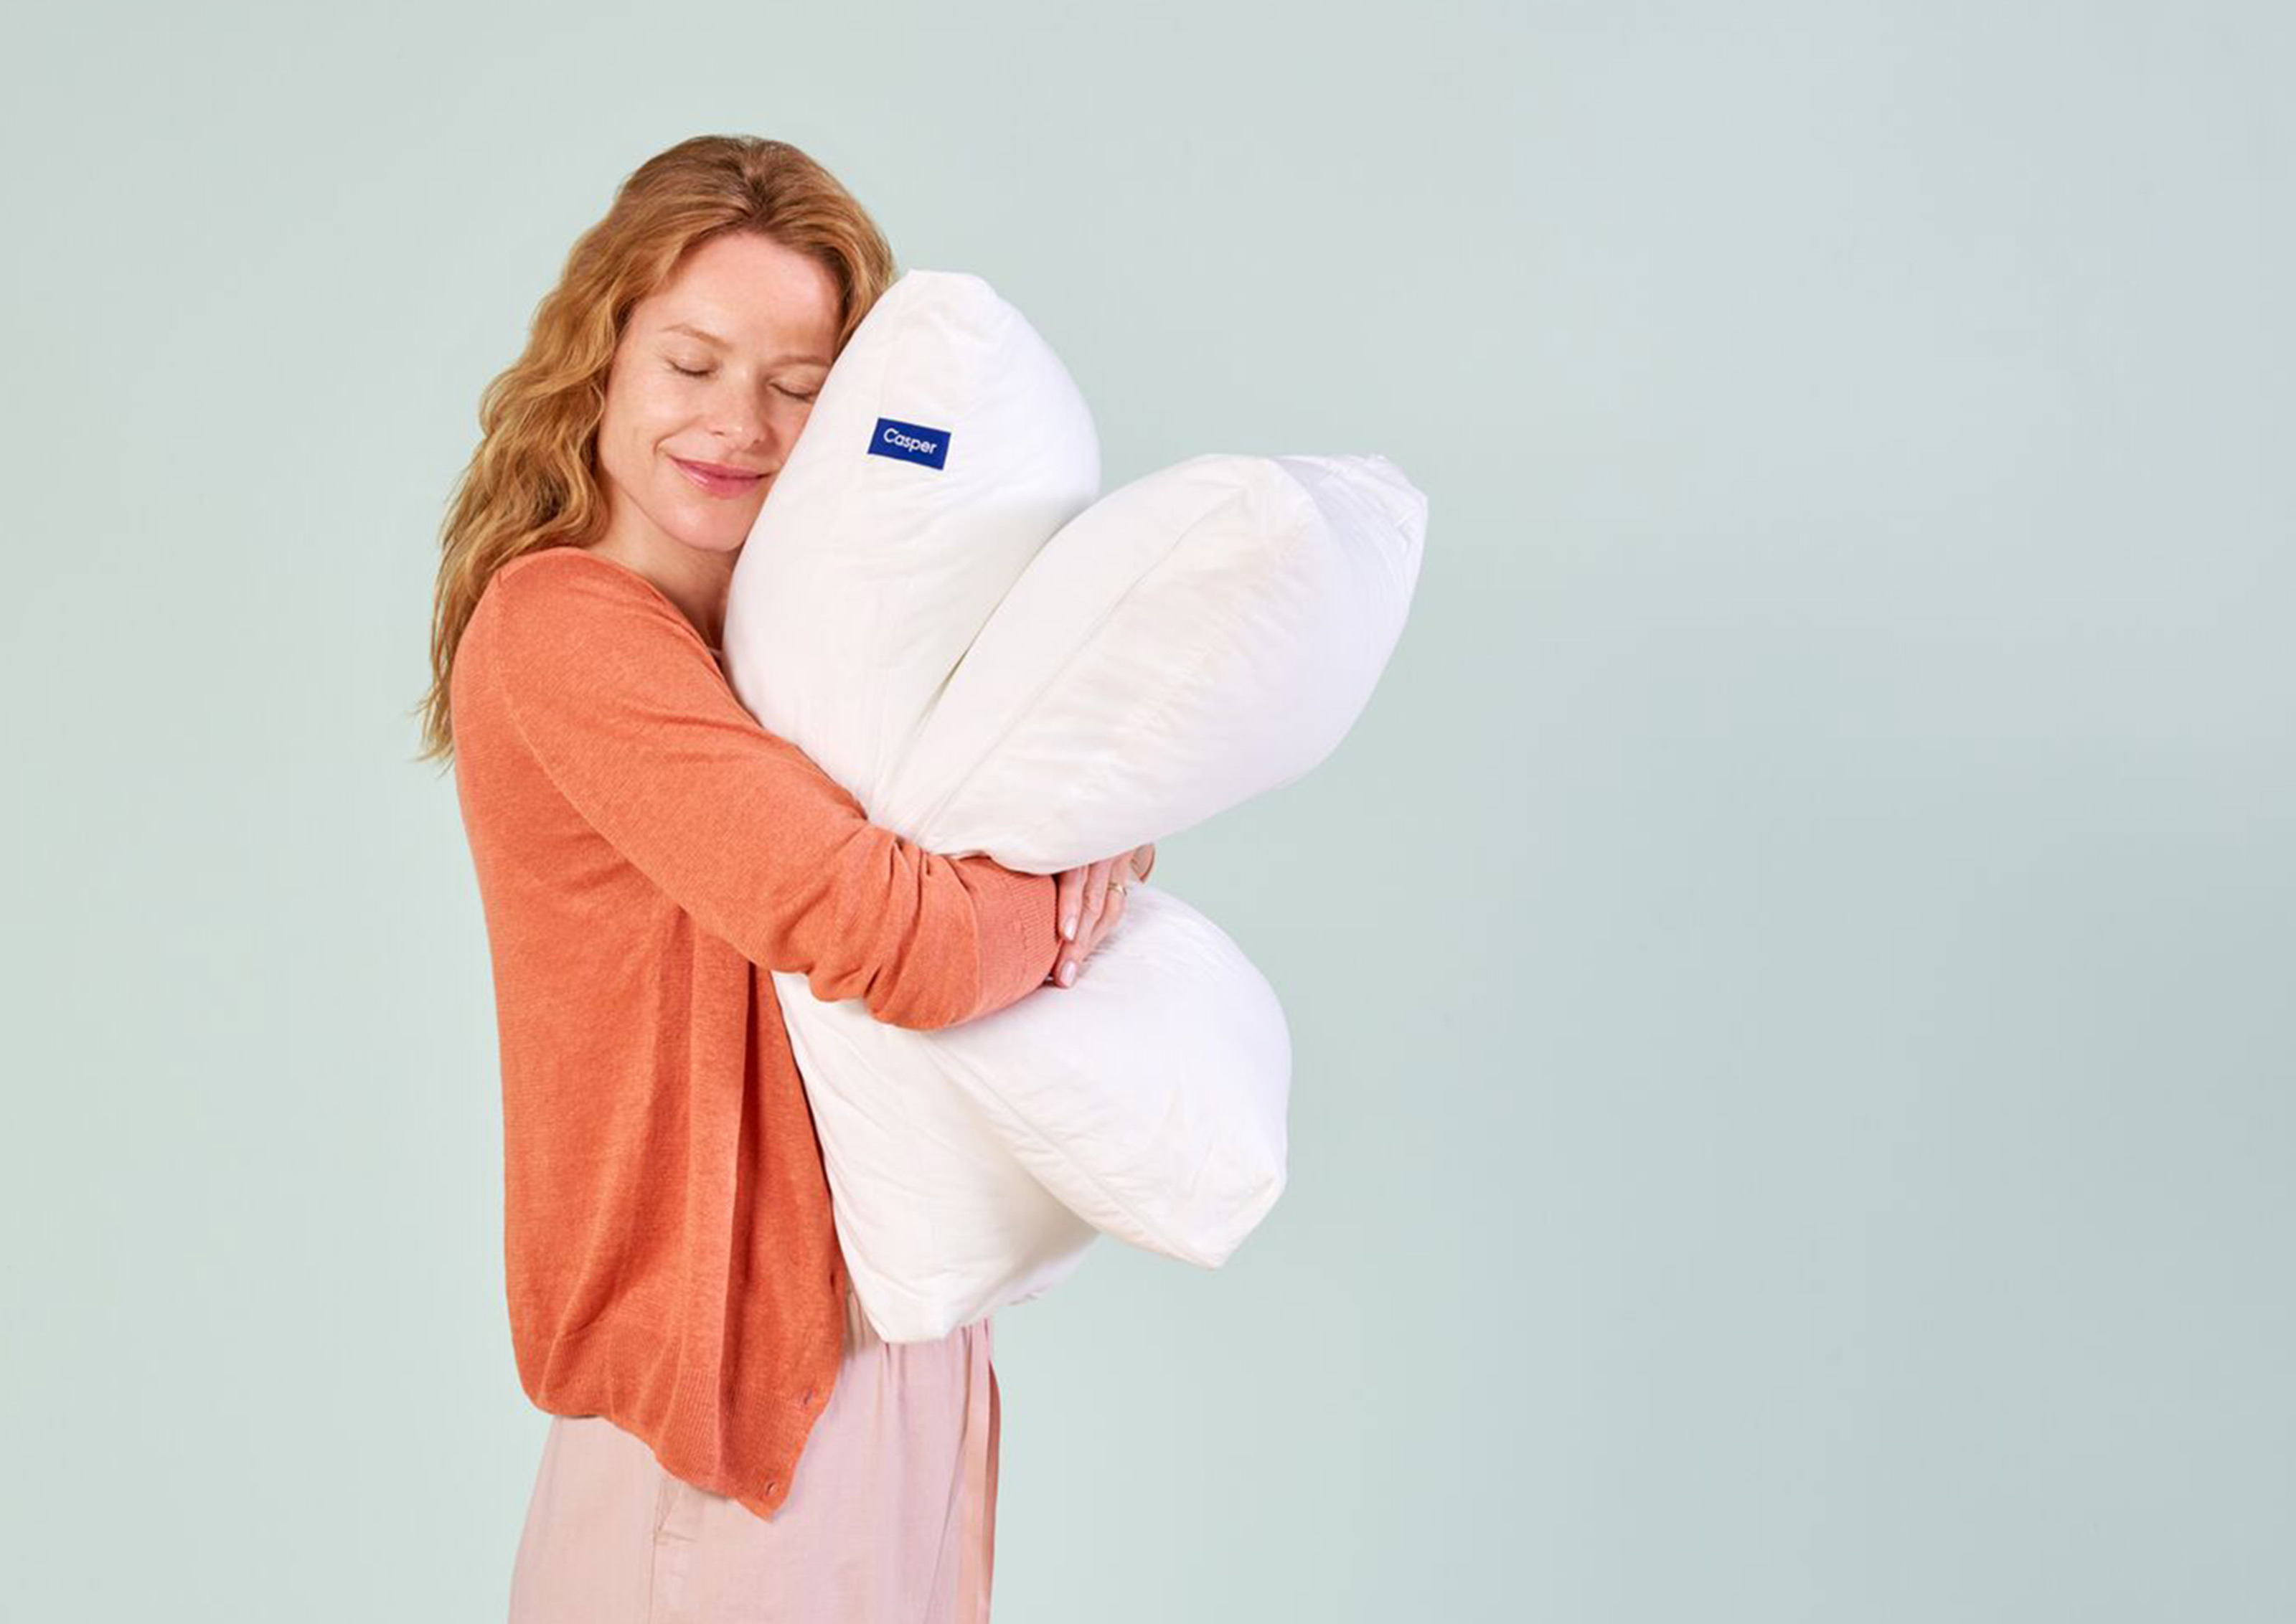 Pillows online: Soft and supportive, in